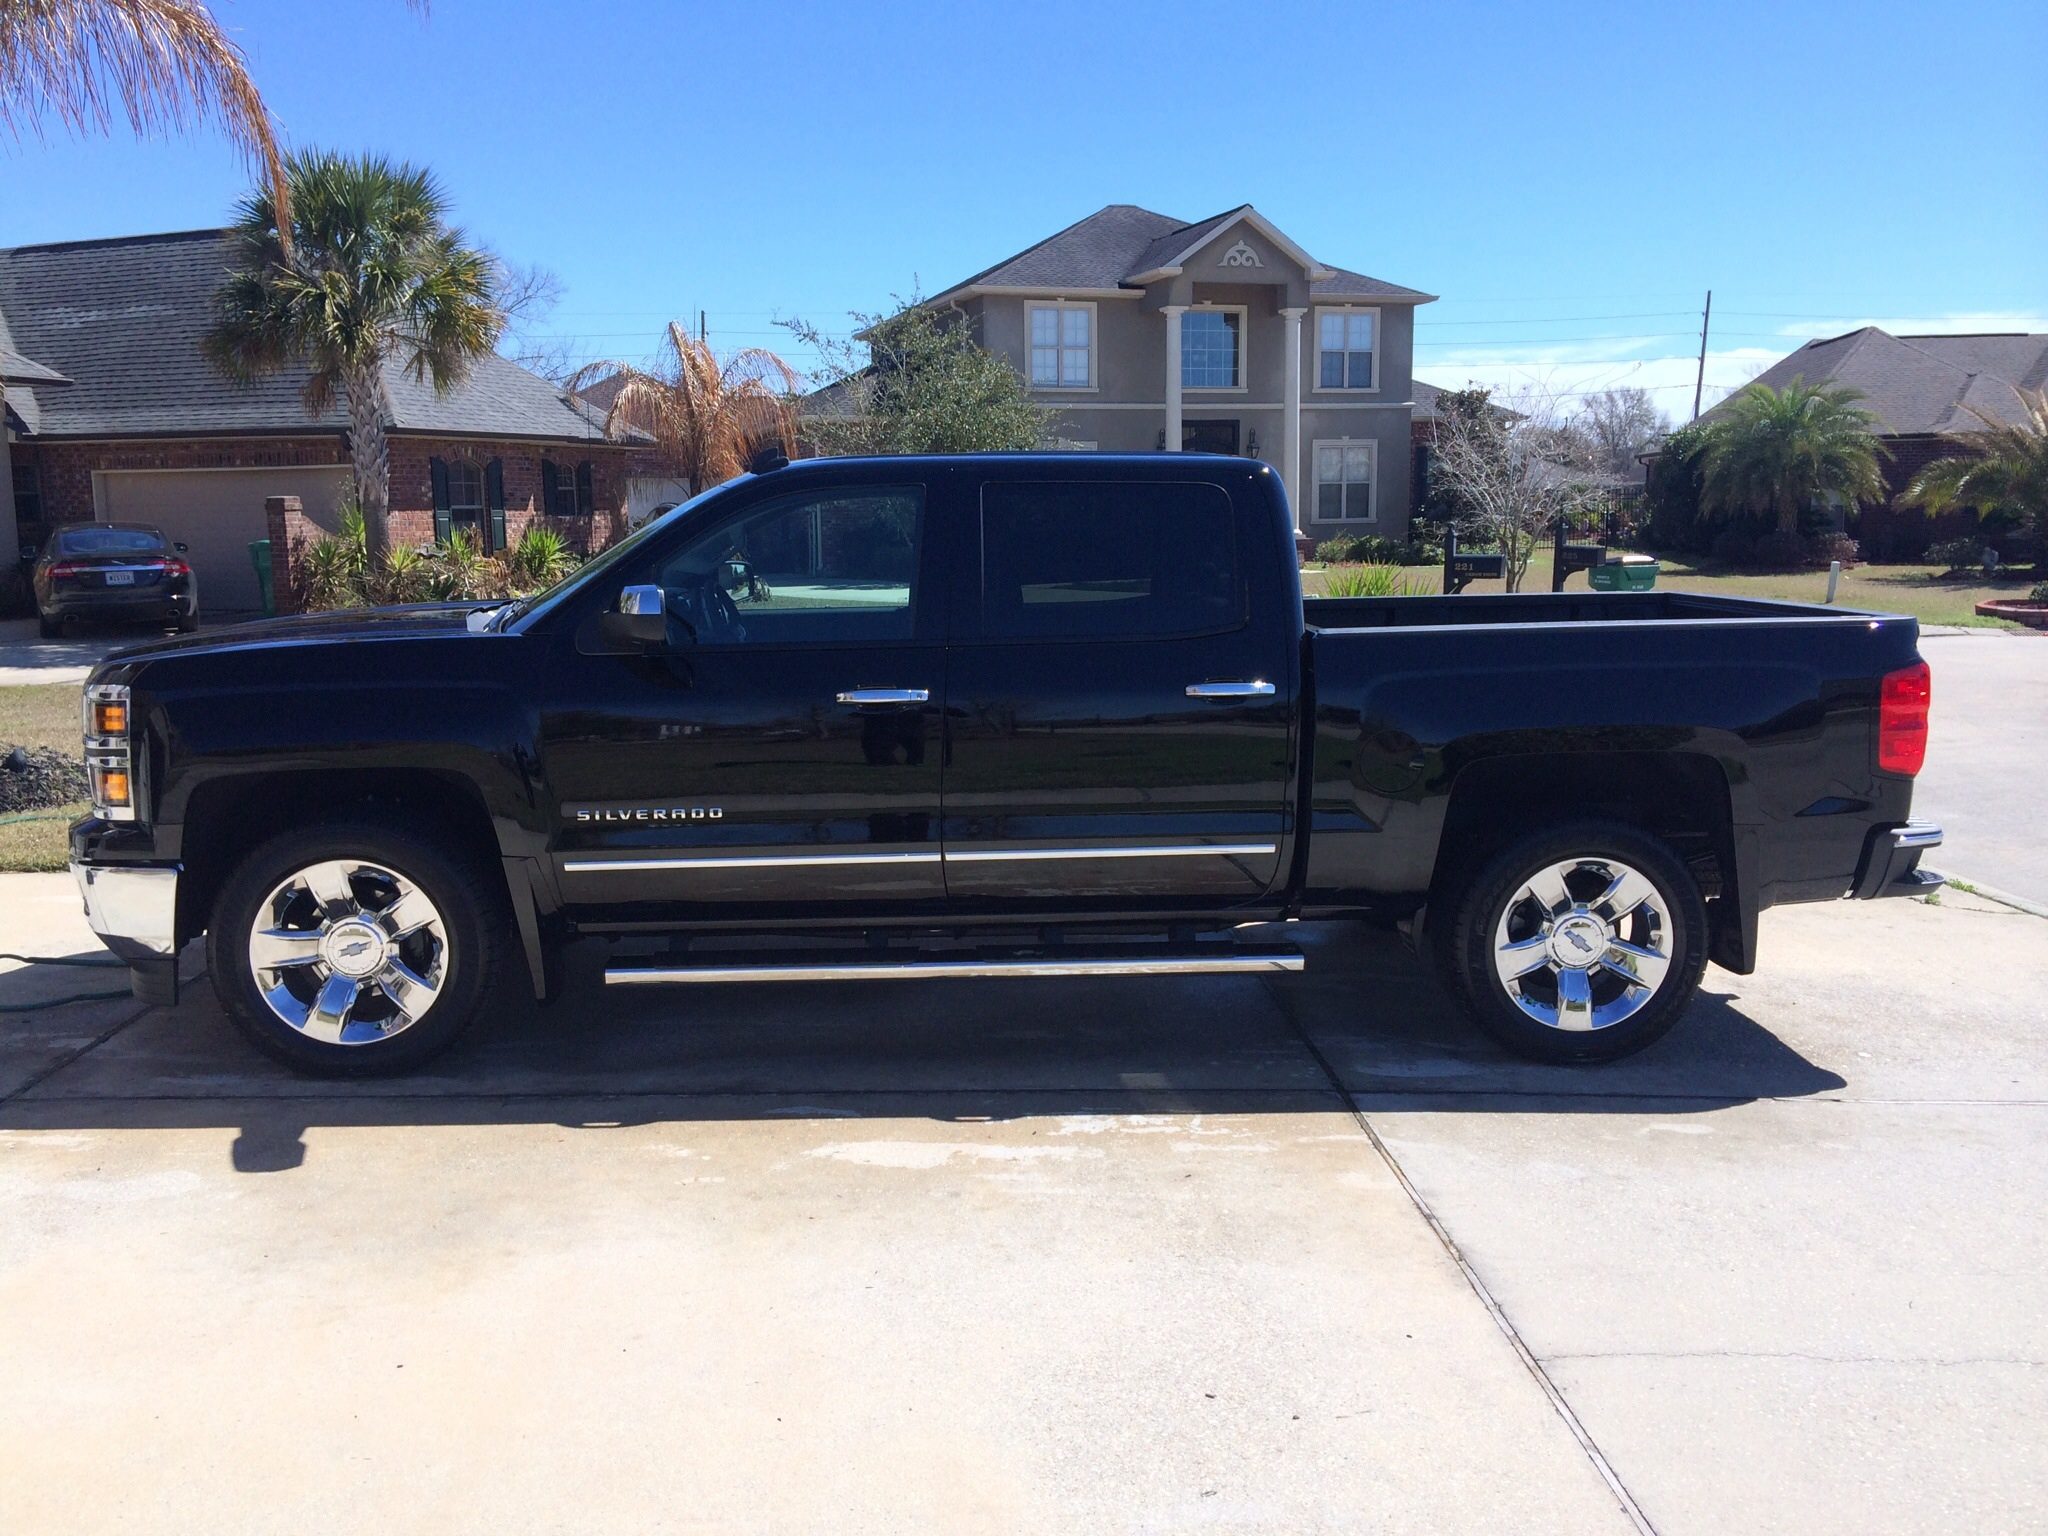 Zdet3 2014 Chevrolet Silverado 1500 Crew Cab Specs Photos Modification Info At Cardomain